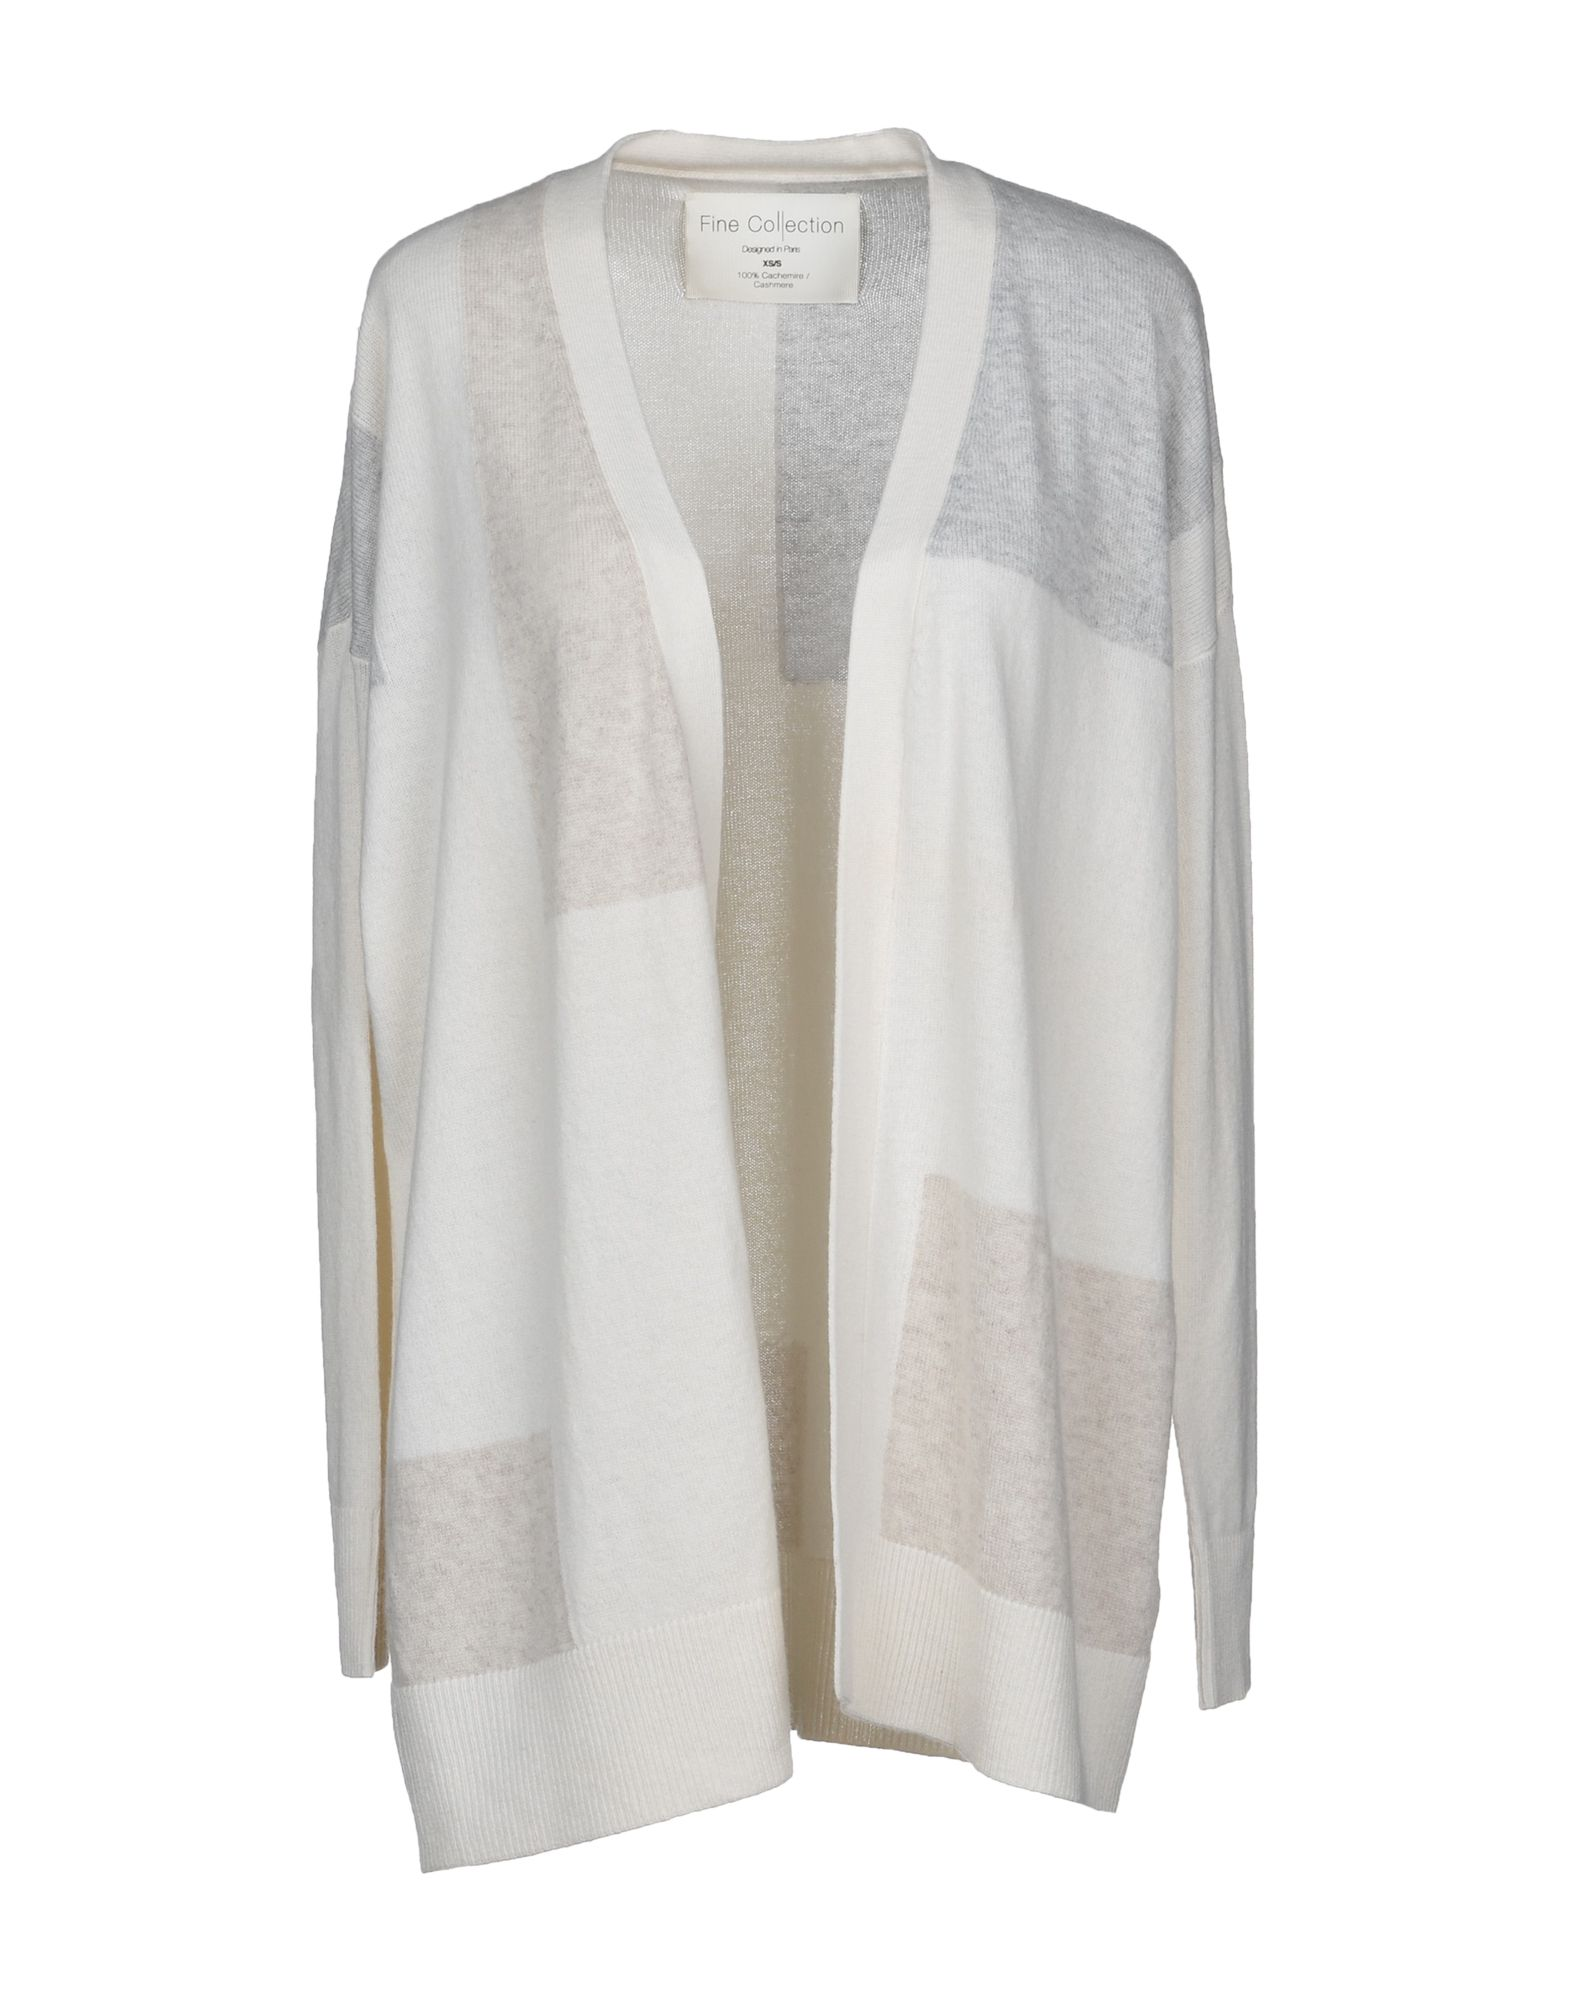 FINE COLLECTION Cardigan in Ivory